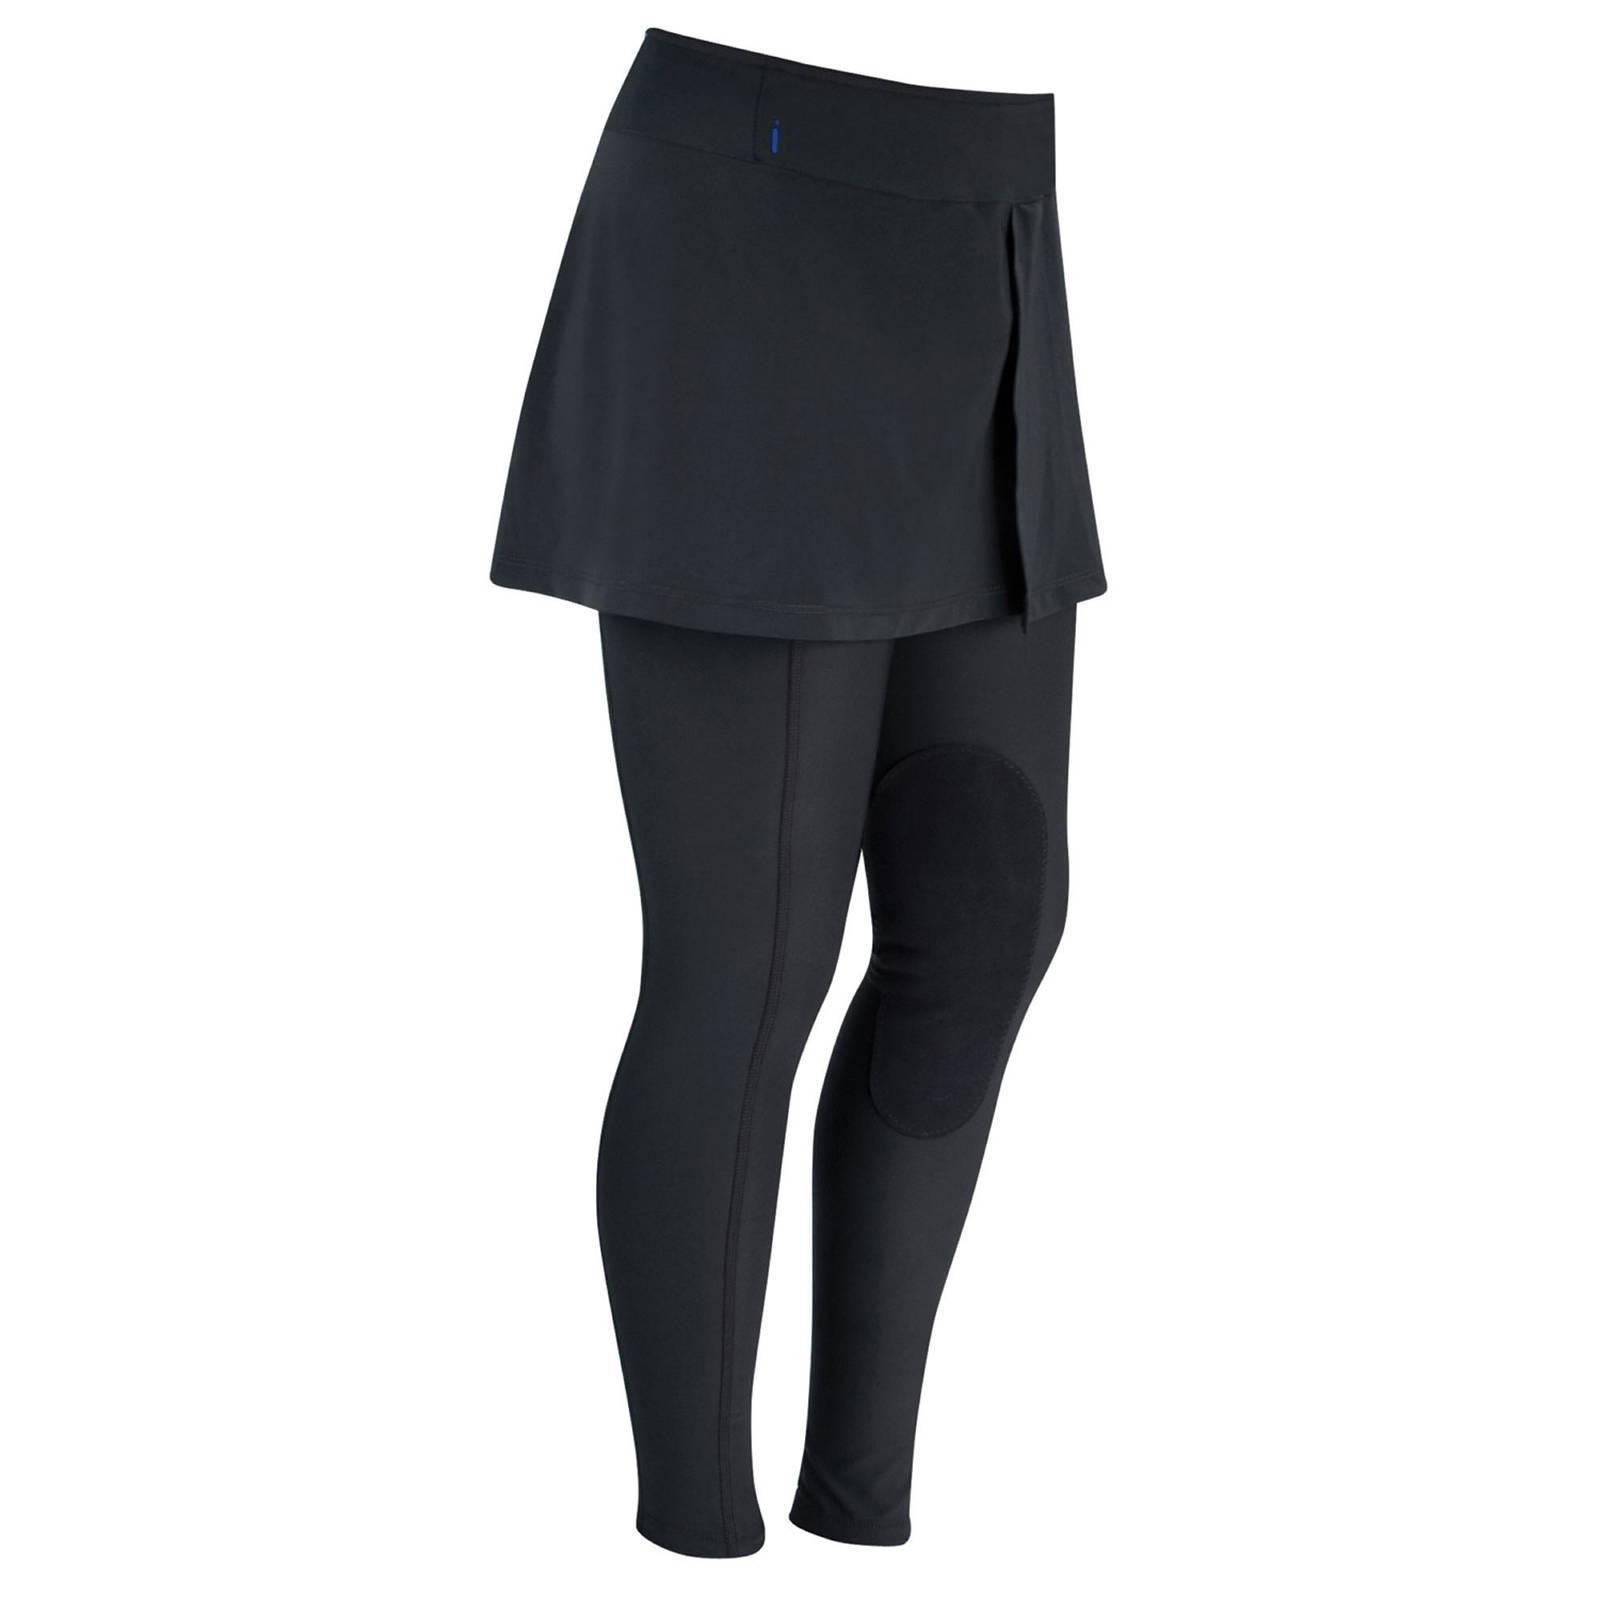 Irideon Issential Miniature Riding Tights